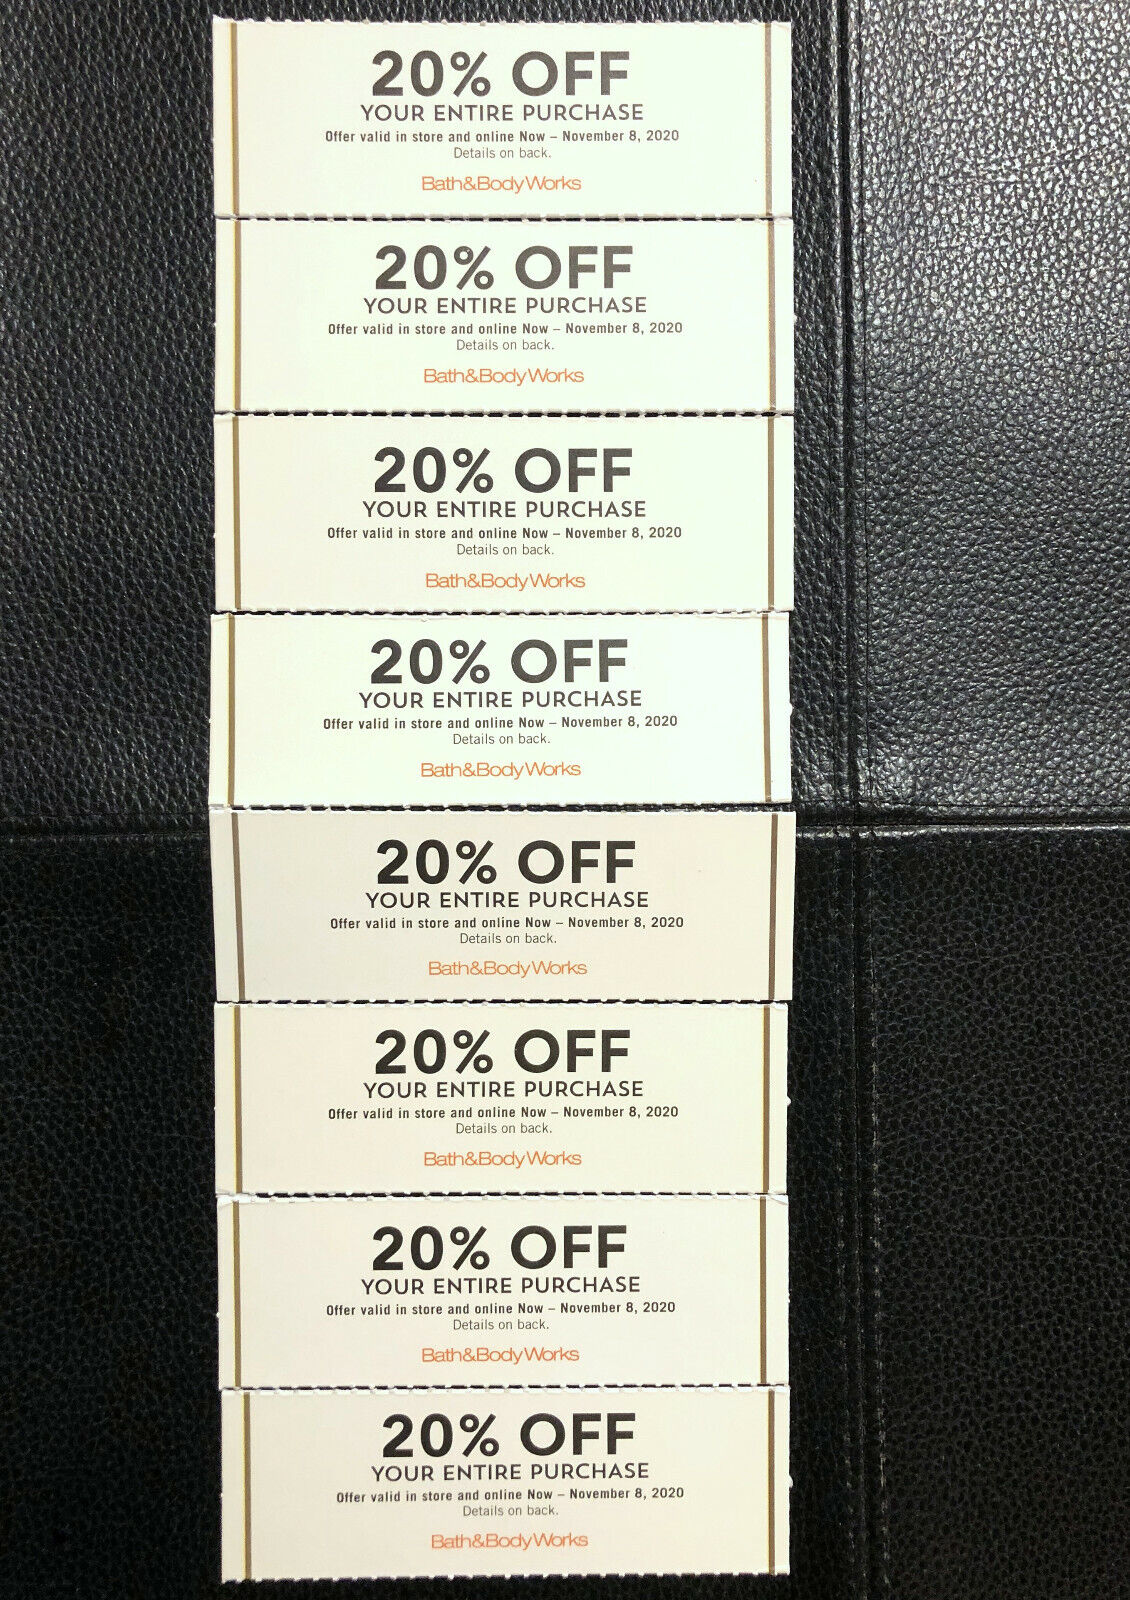 Bath Body Works Coupons Expires 11/8 8 Coupons 20 Off - $89.00